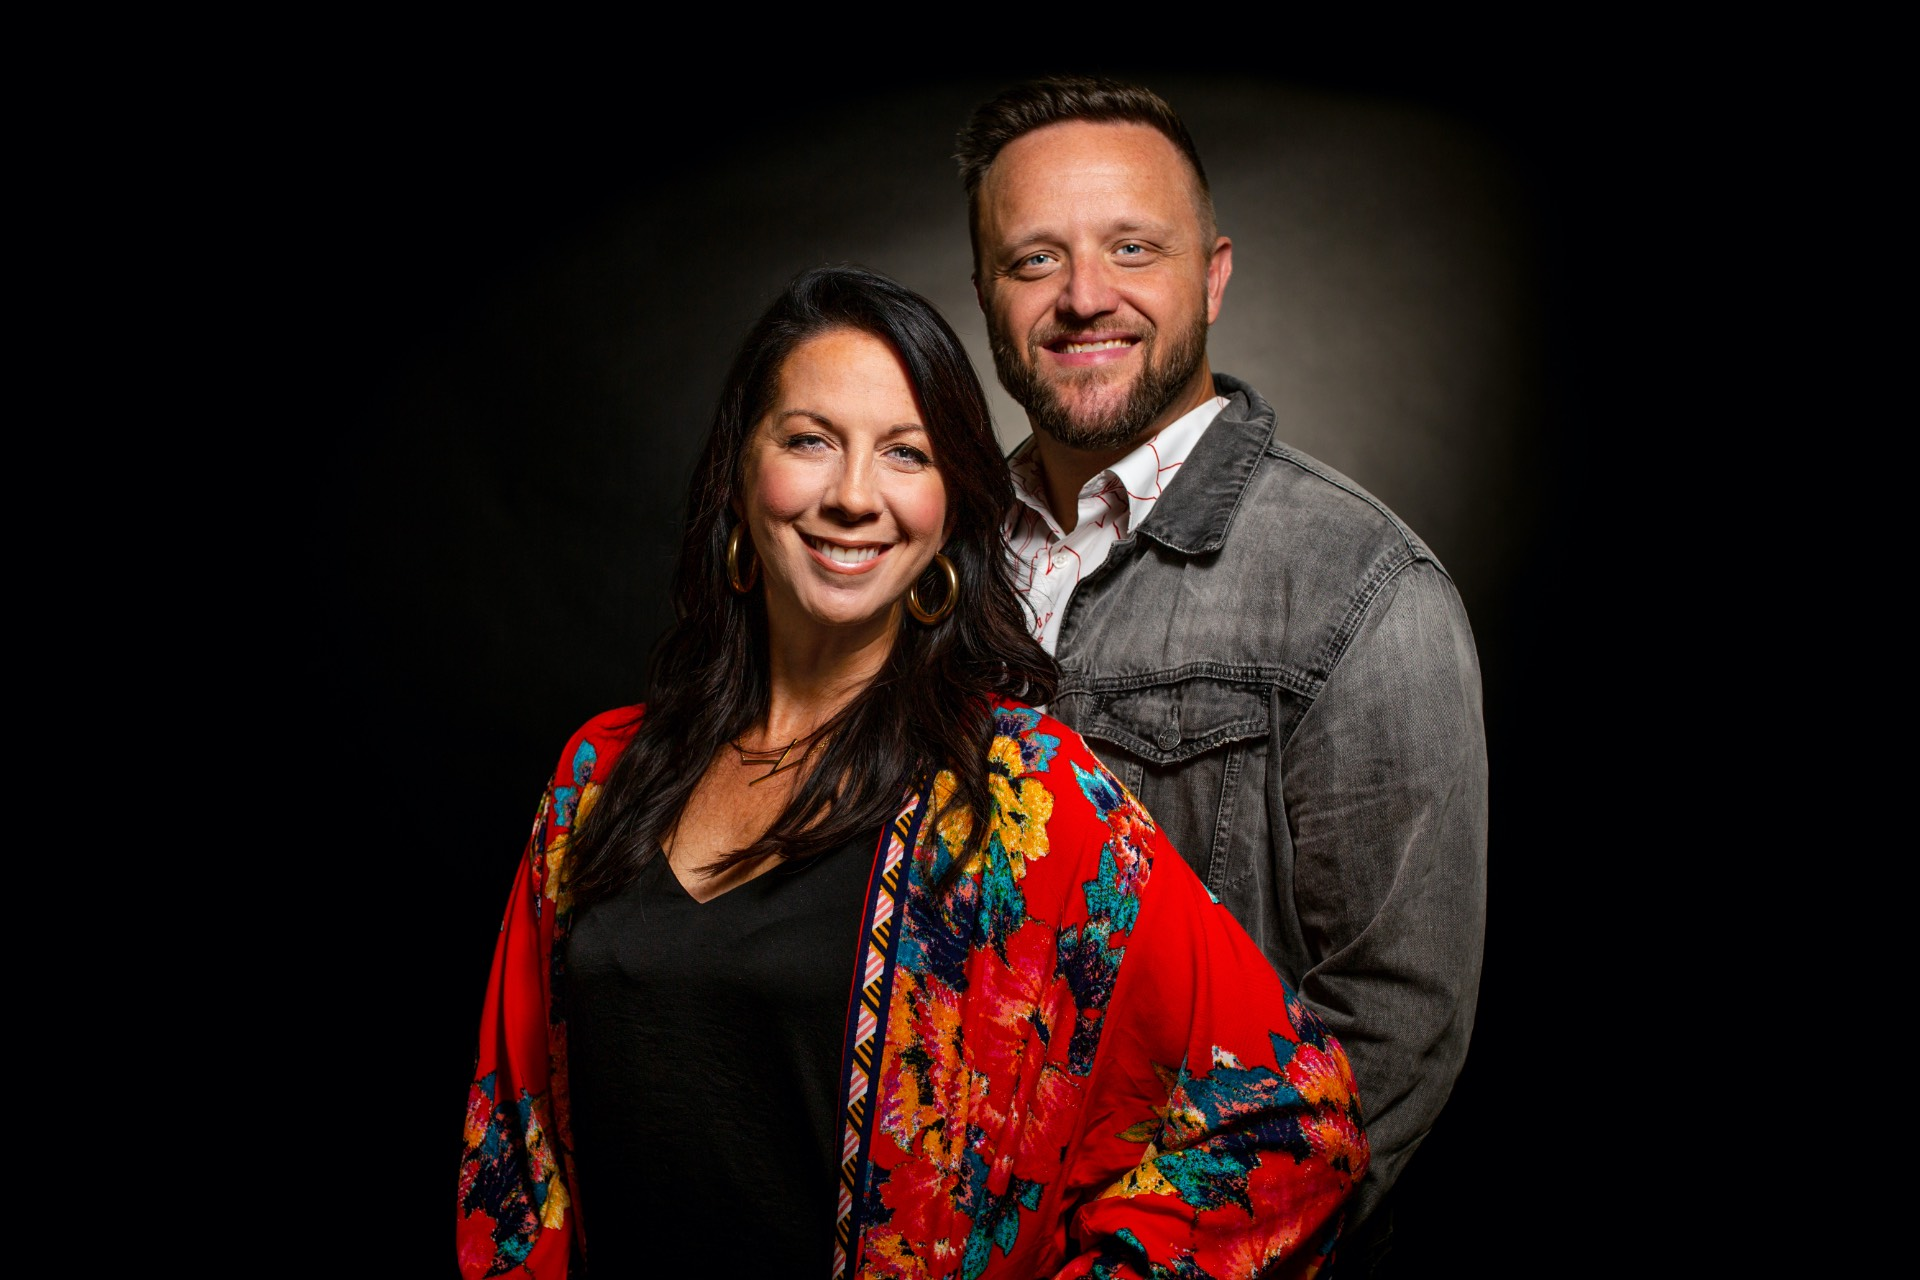 Pastors Josh and Kristin Lipscomb of Liberty Church